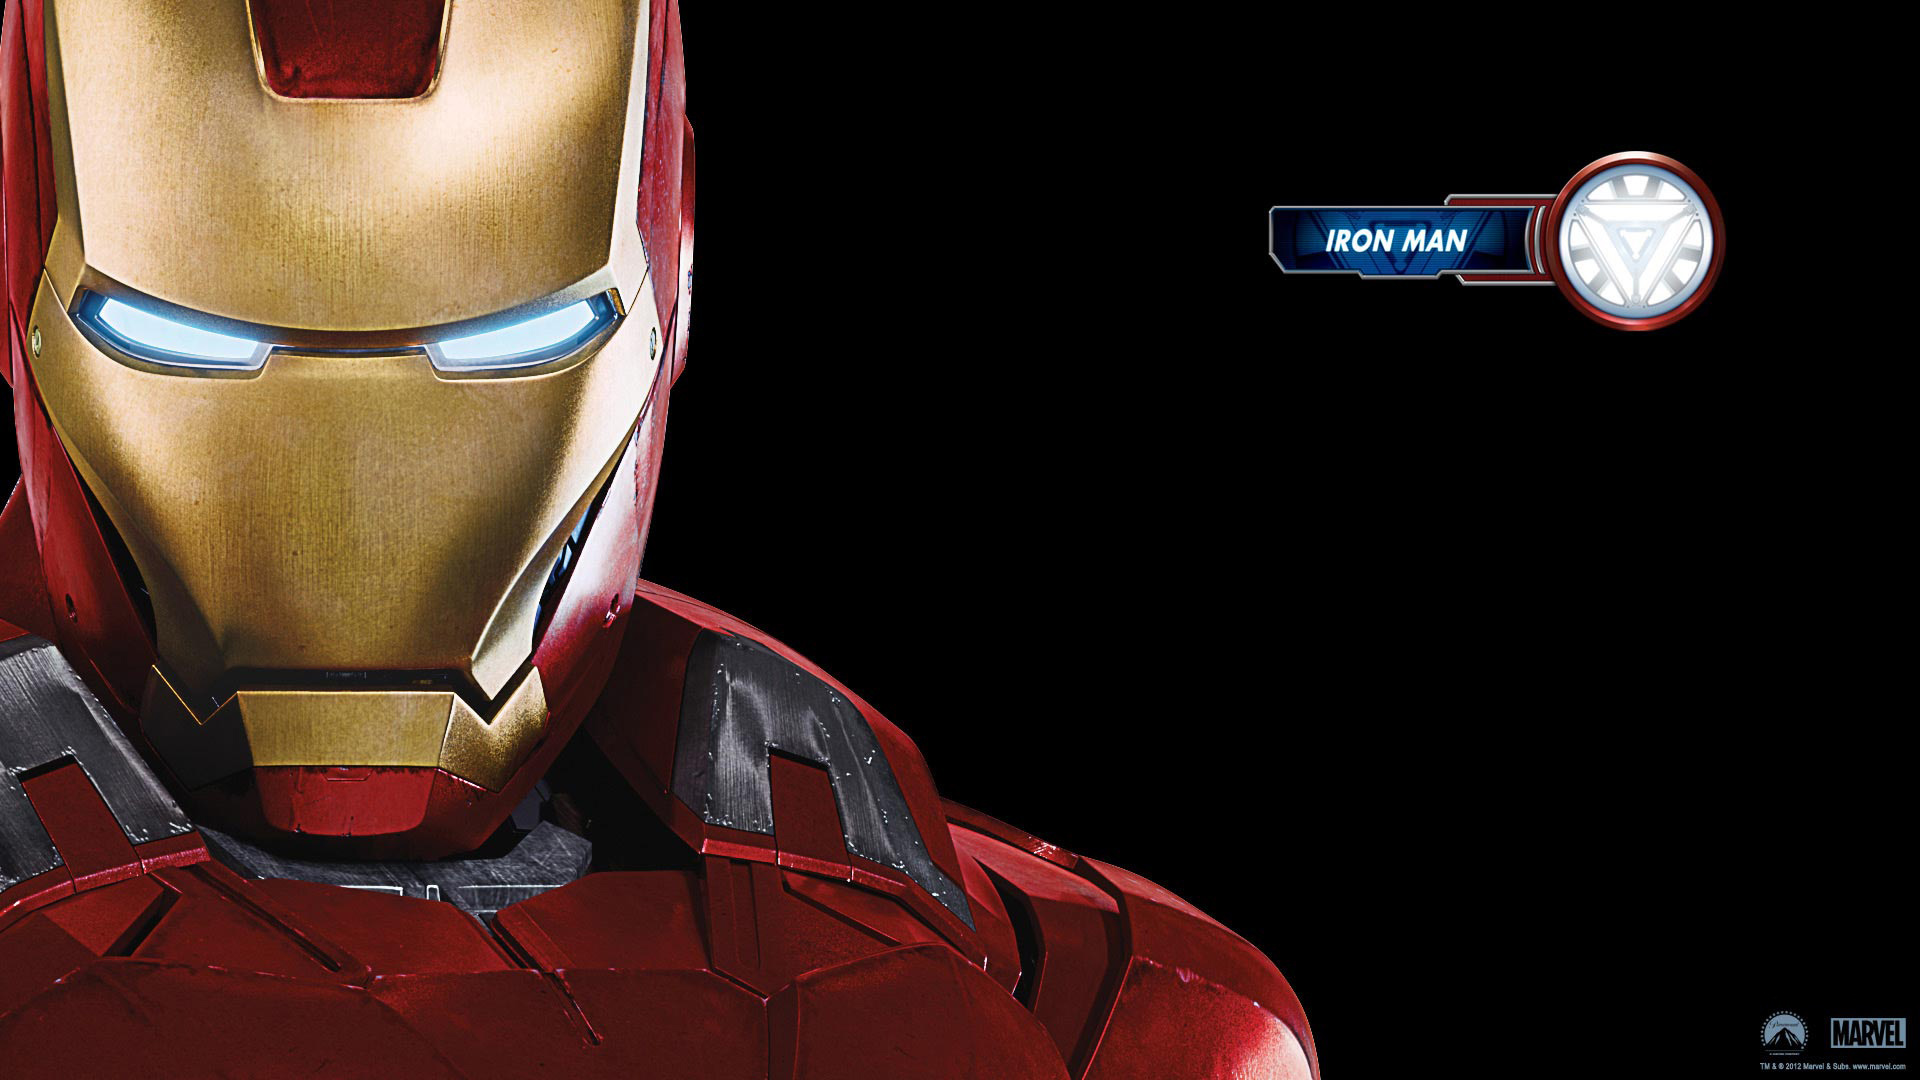 Iron Man in 2012 Avengers Wallpapers HD Wallpapers 1920x1080